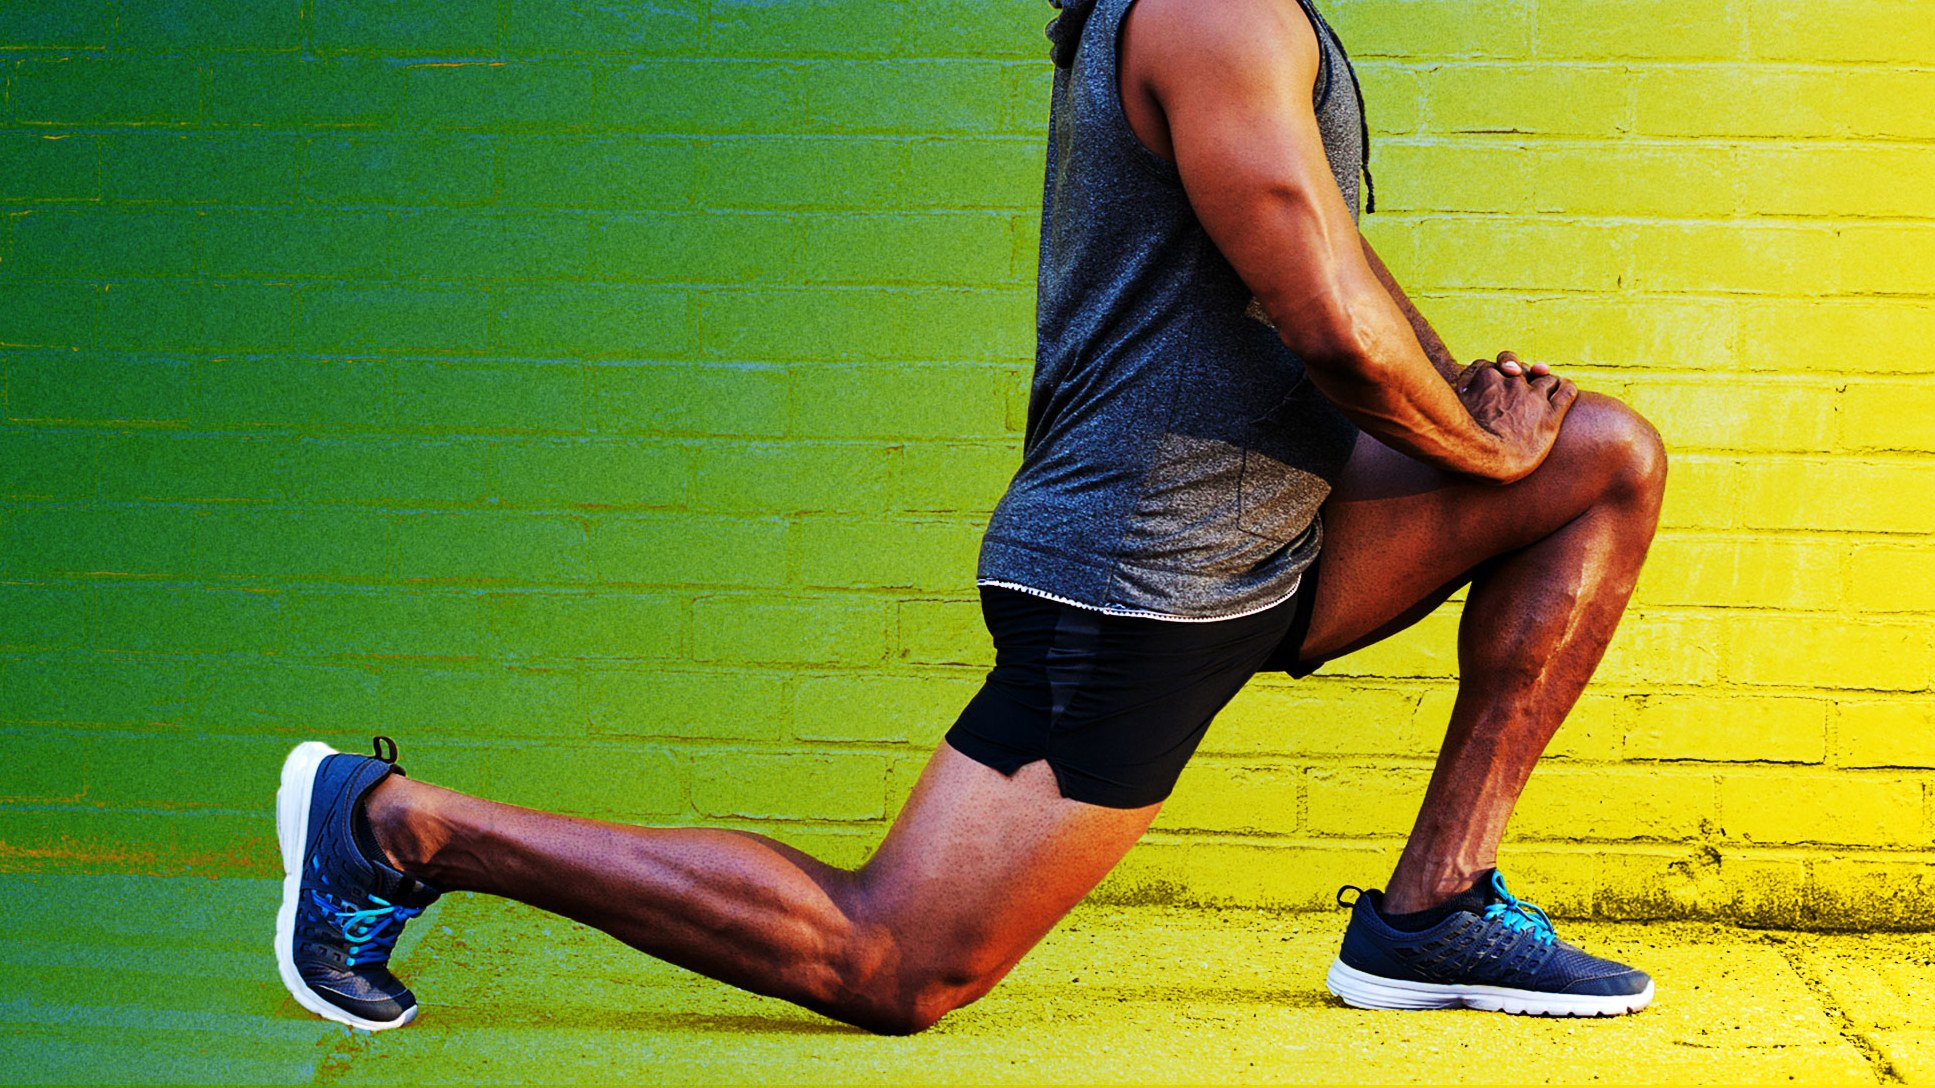 Lunges: what you're doing wrong—and how to fix it https://t.co/lj3zJiYPlM https://t.co/TbuuLSp3BL